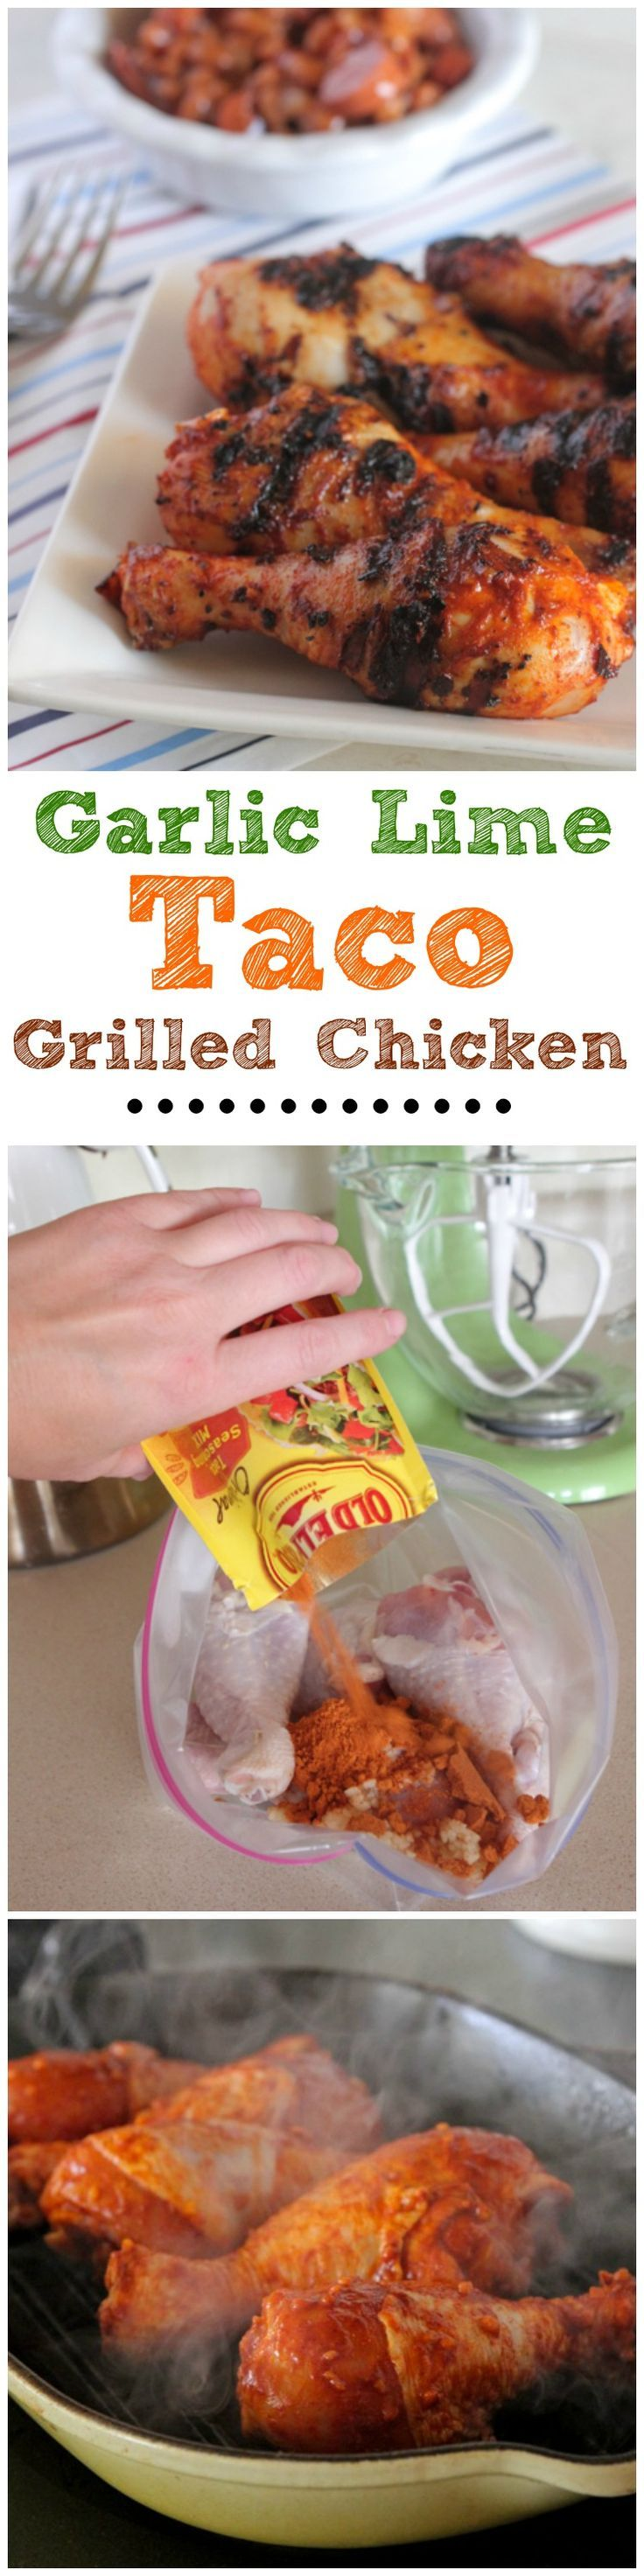 Garlic Lime Taco Grilled Chicken!  Simple summer grilling recipe! #chicken #dinner #grill